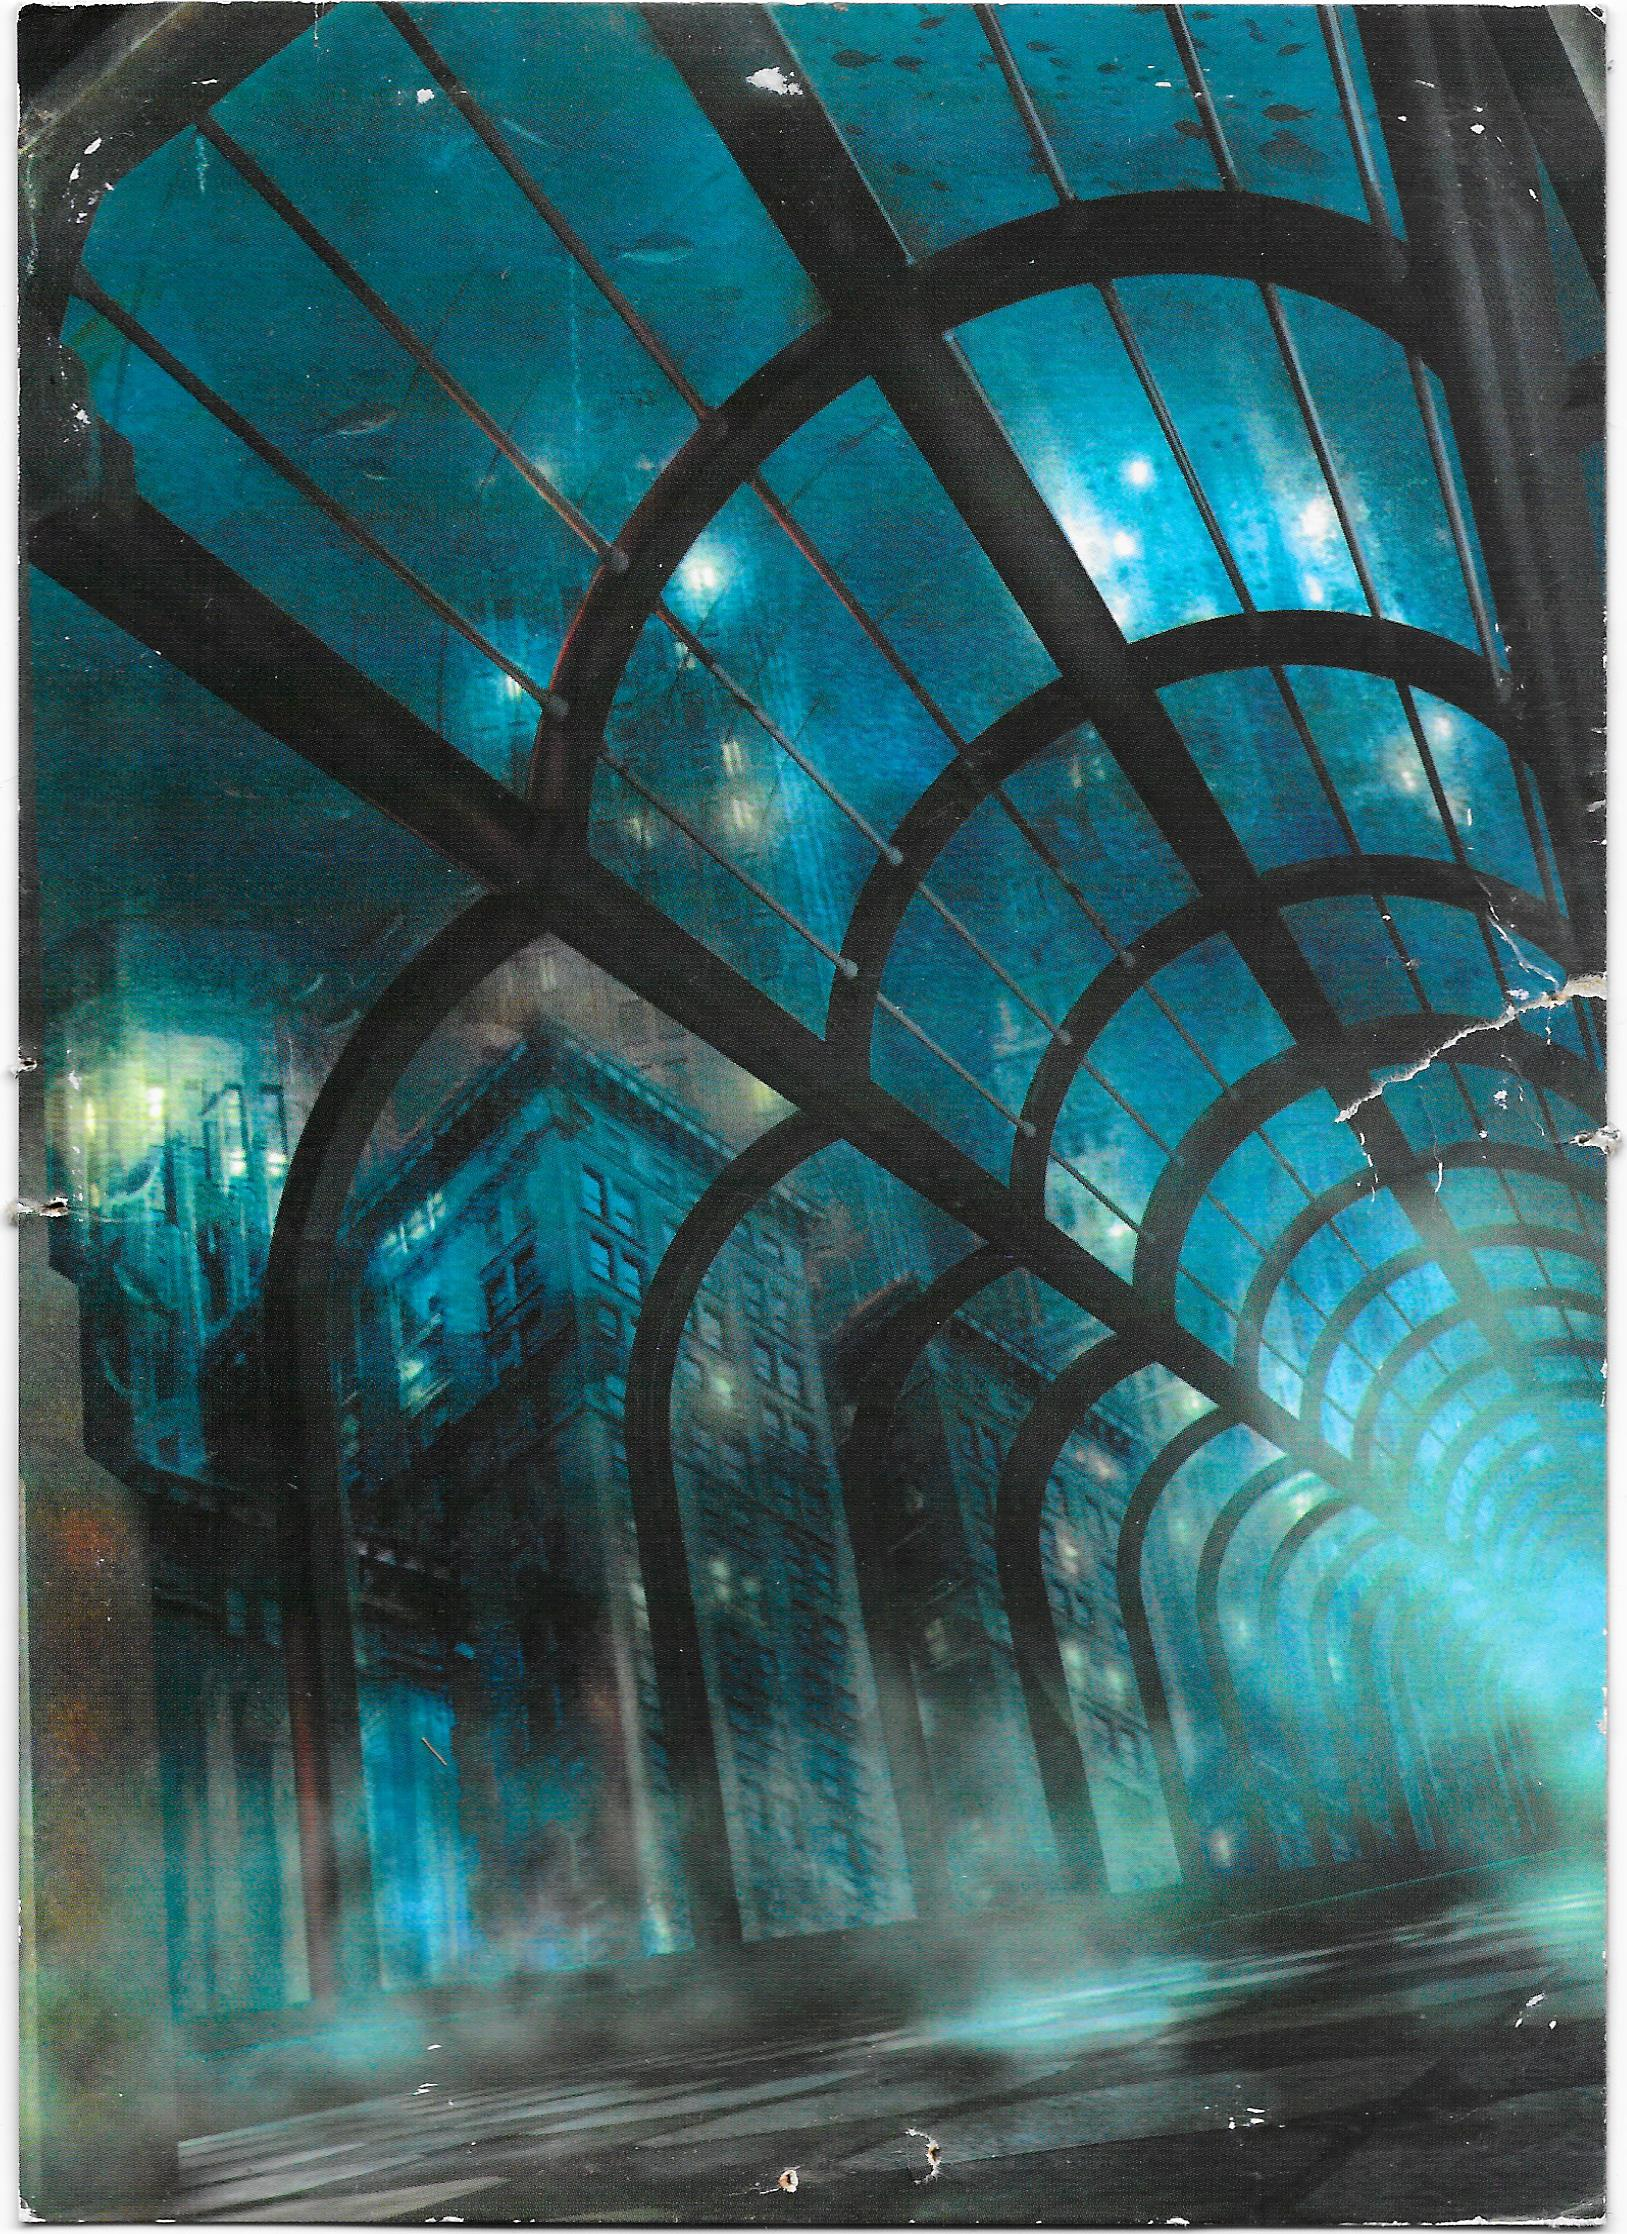 Detail-of-the-cover-painting-used-for-the-first-Bioshock-game-showing-the-tunnels-of-Rapture-wallpaper-wpc5804100